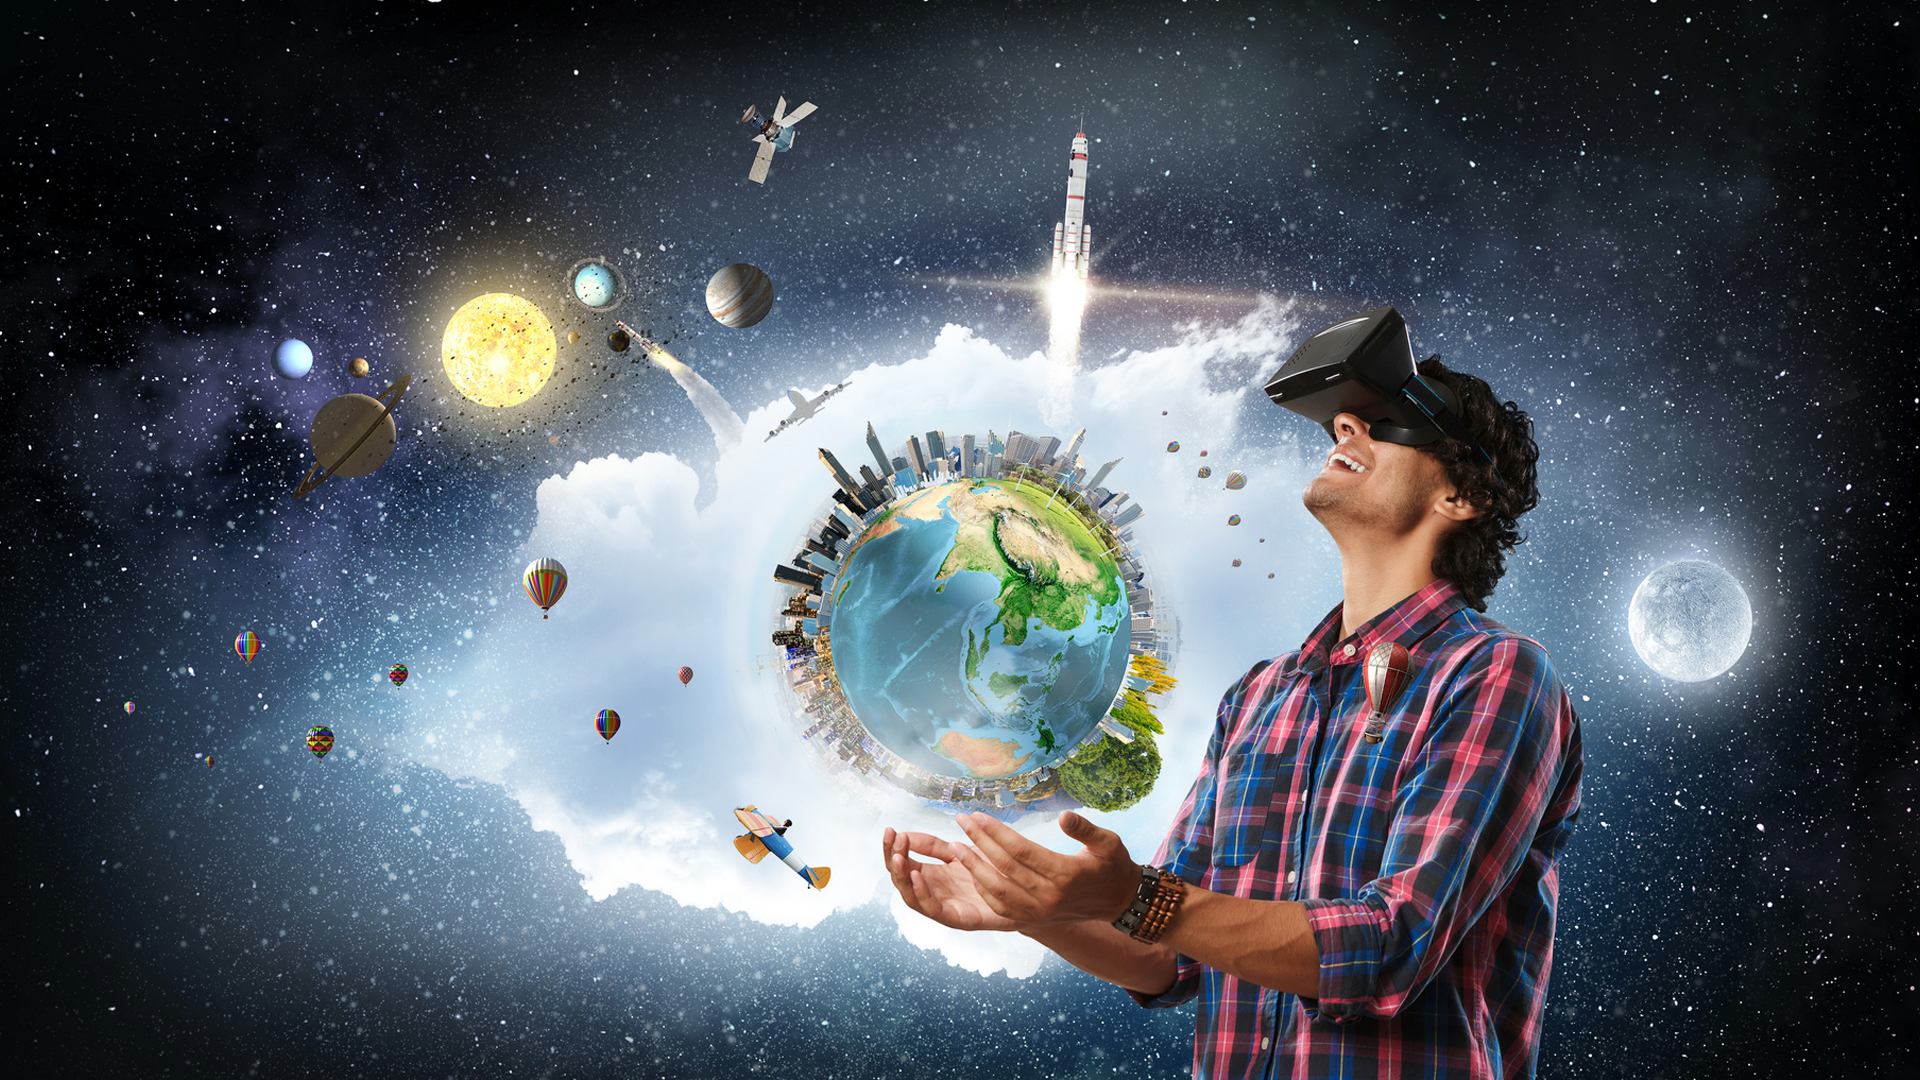 Unconventional Examples of AR/VR in Education: Reaching from the Ground to Space